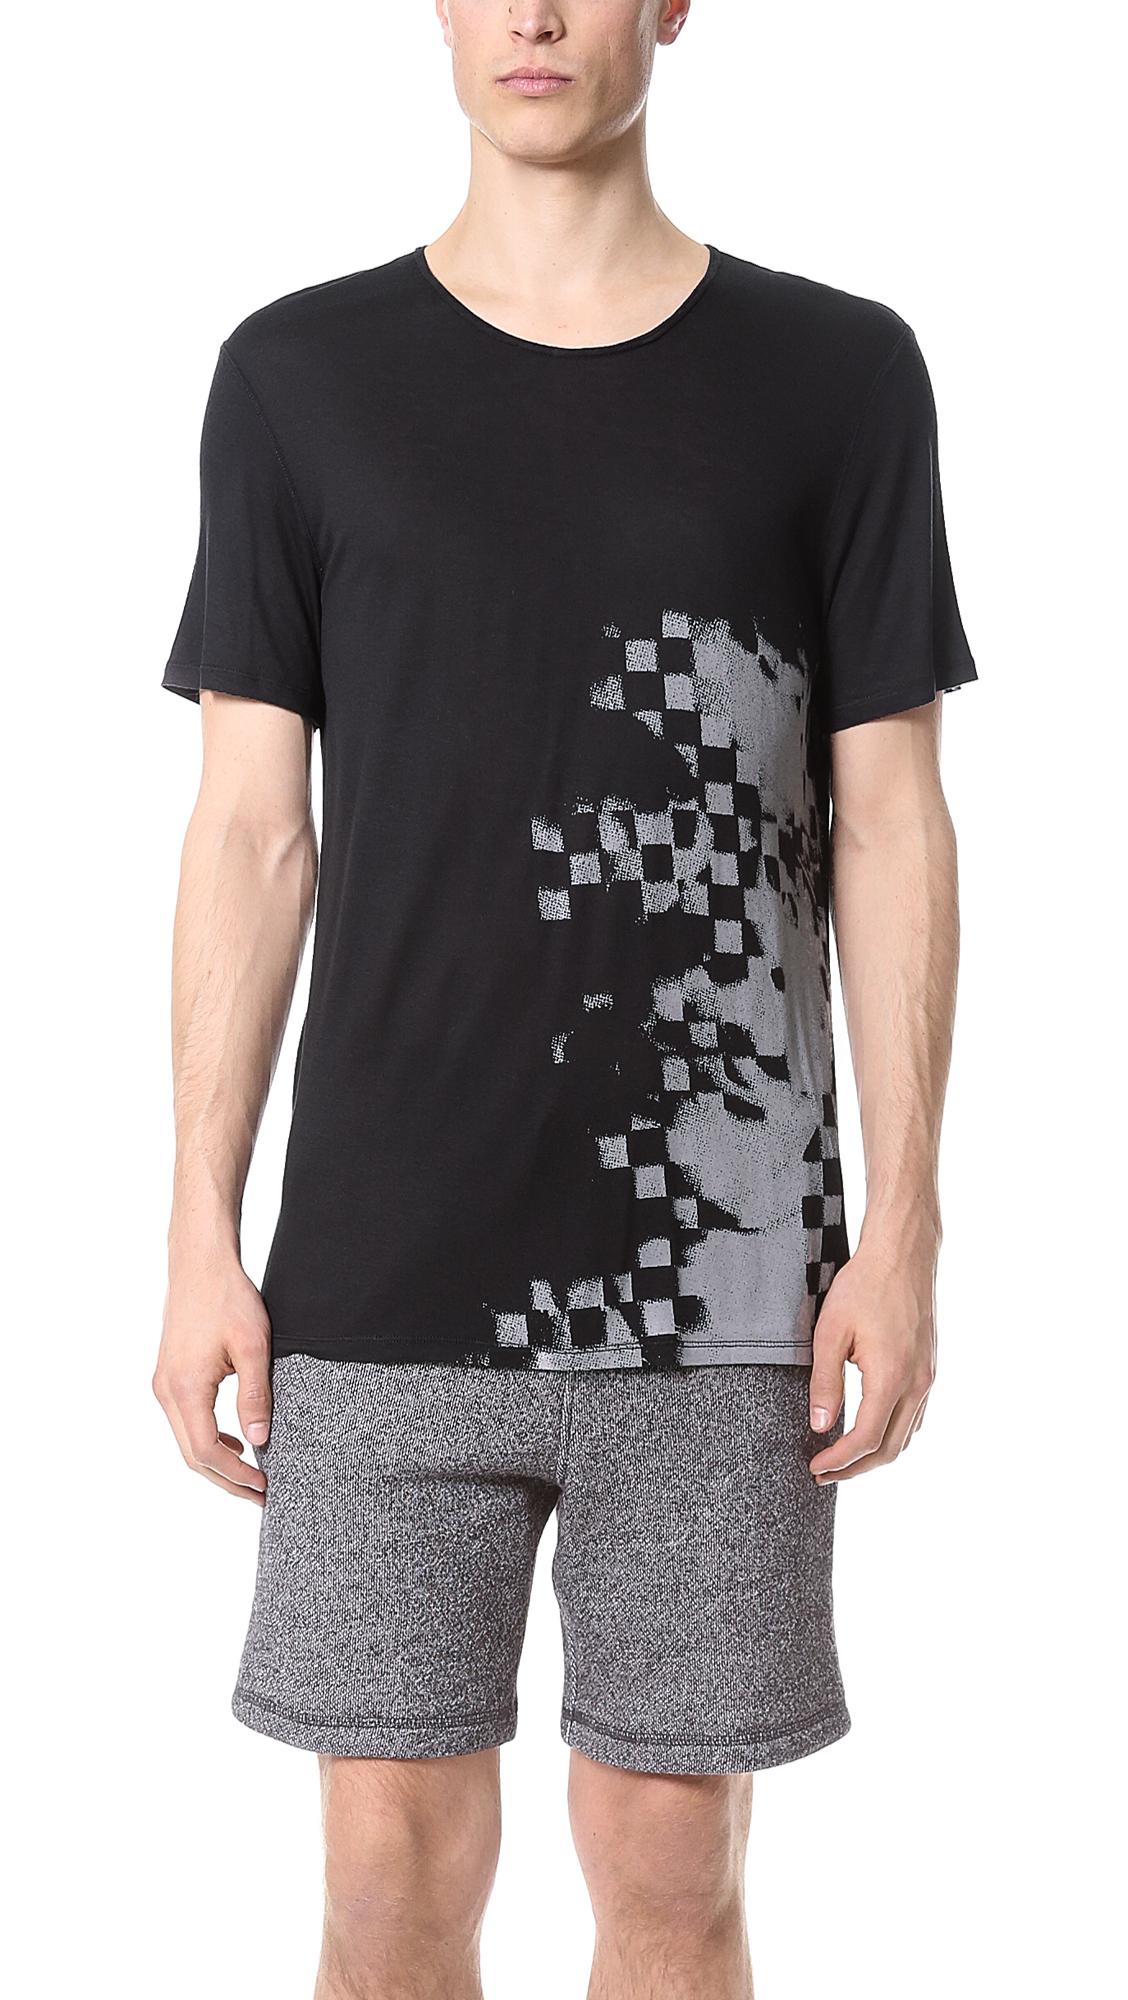 Lyst Alexander Wang Short Sleeve Tshirt In Black For Men